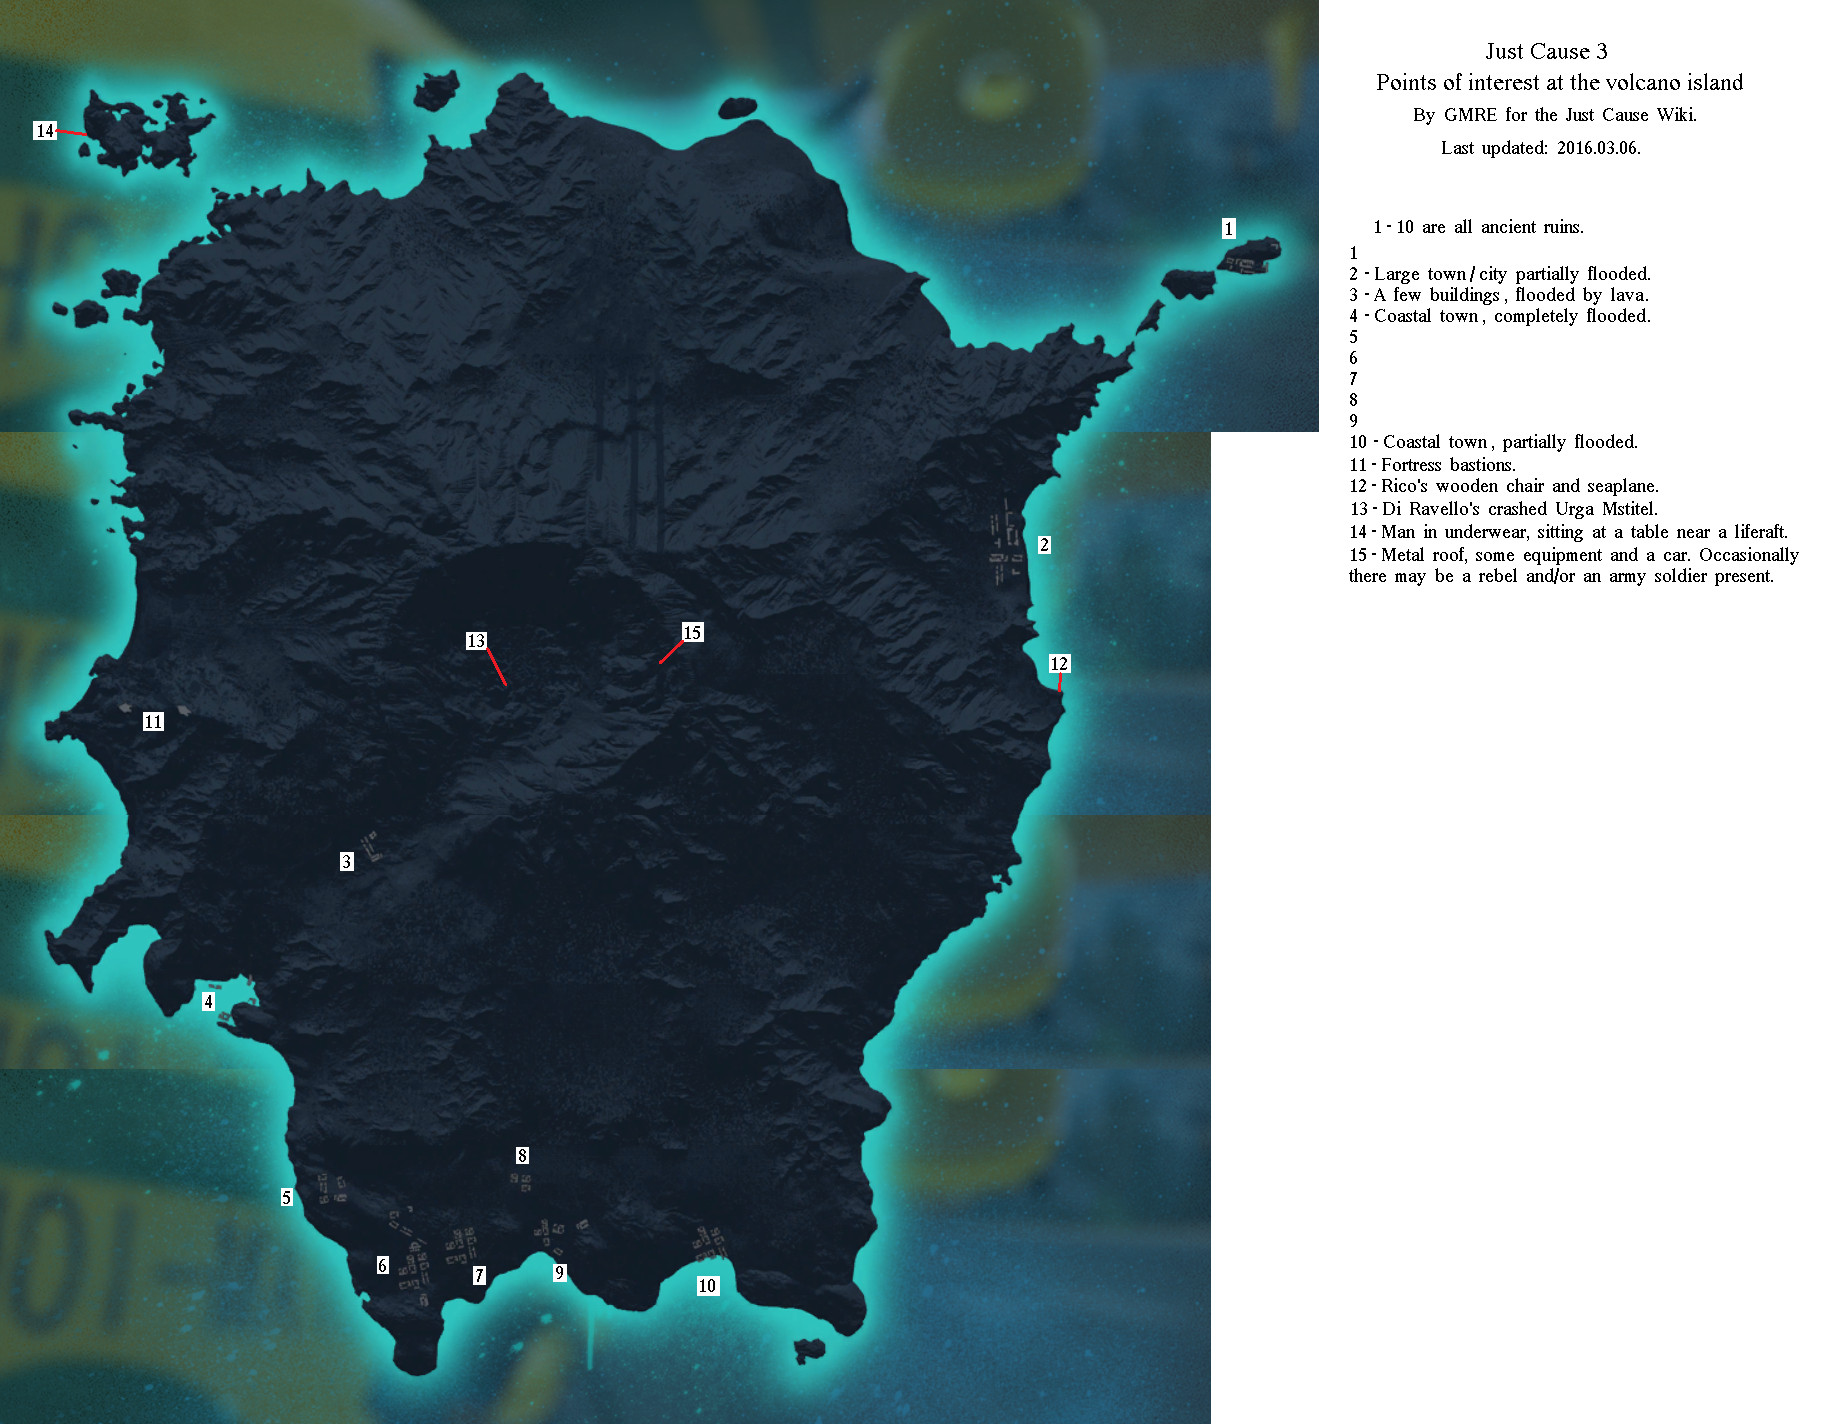 JC3 volcano island points of interest map